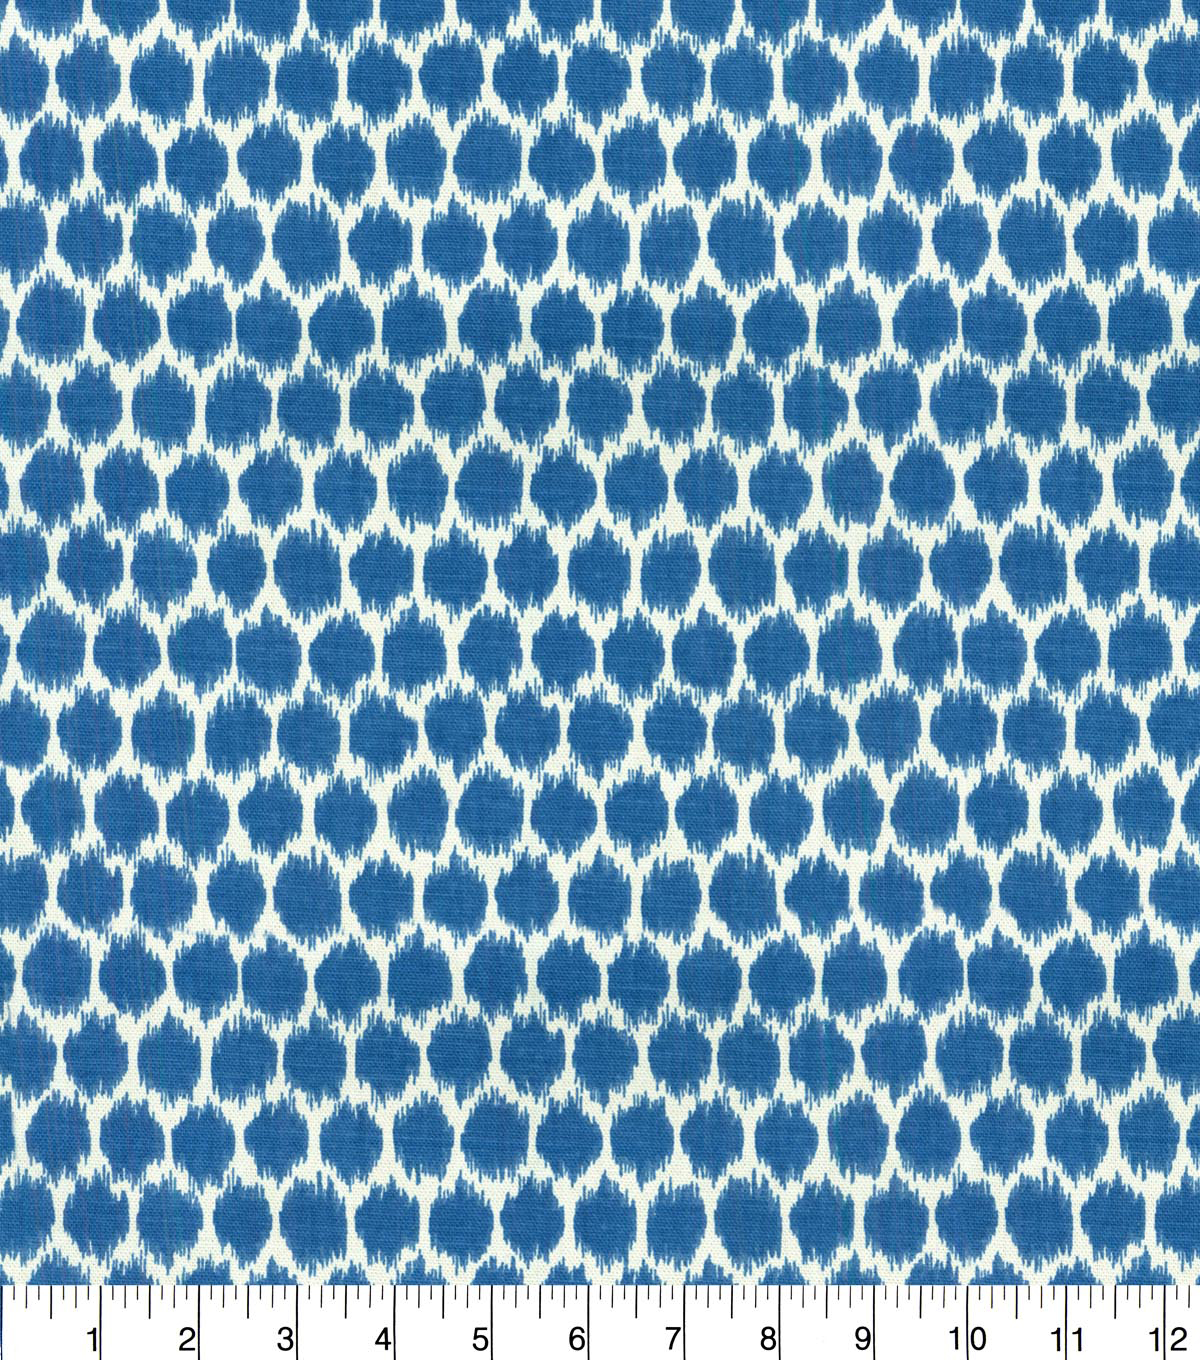 Waverly Upholstery Fabric 54''-Bluebell Seeing Spots